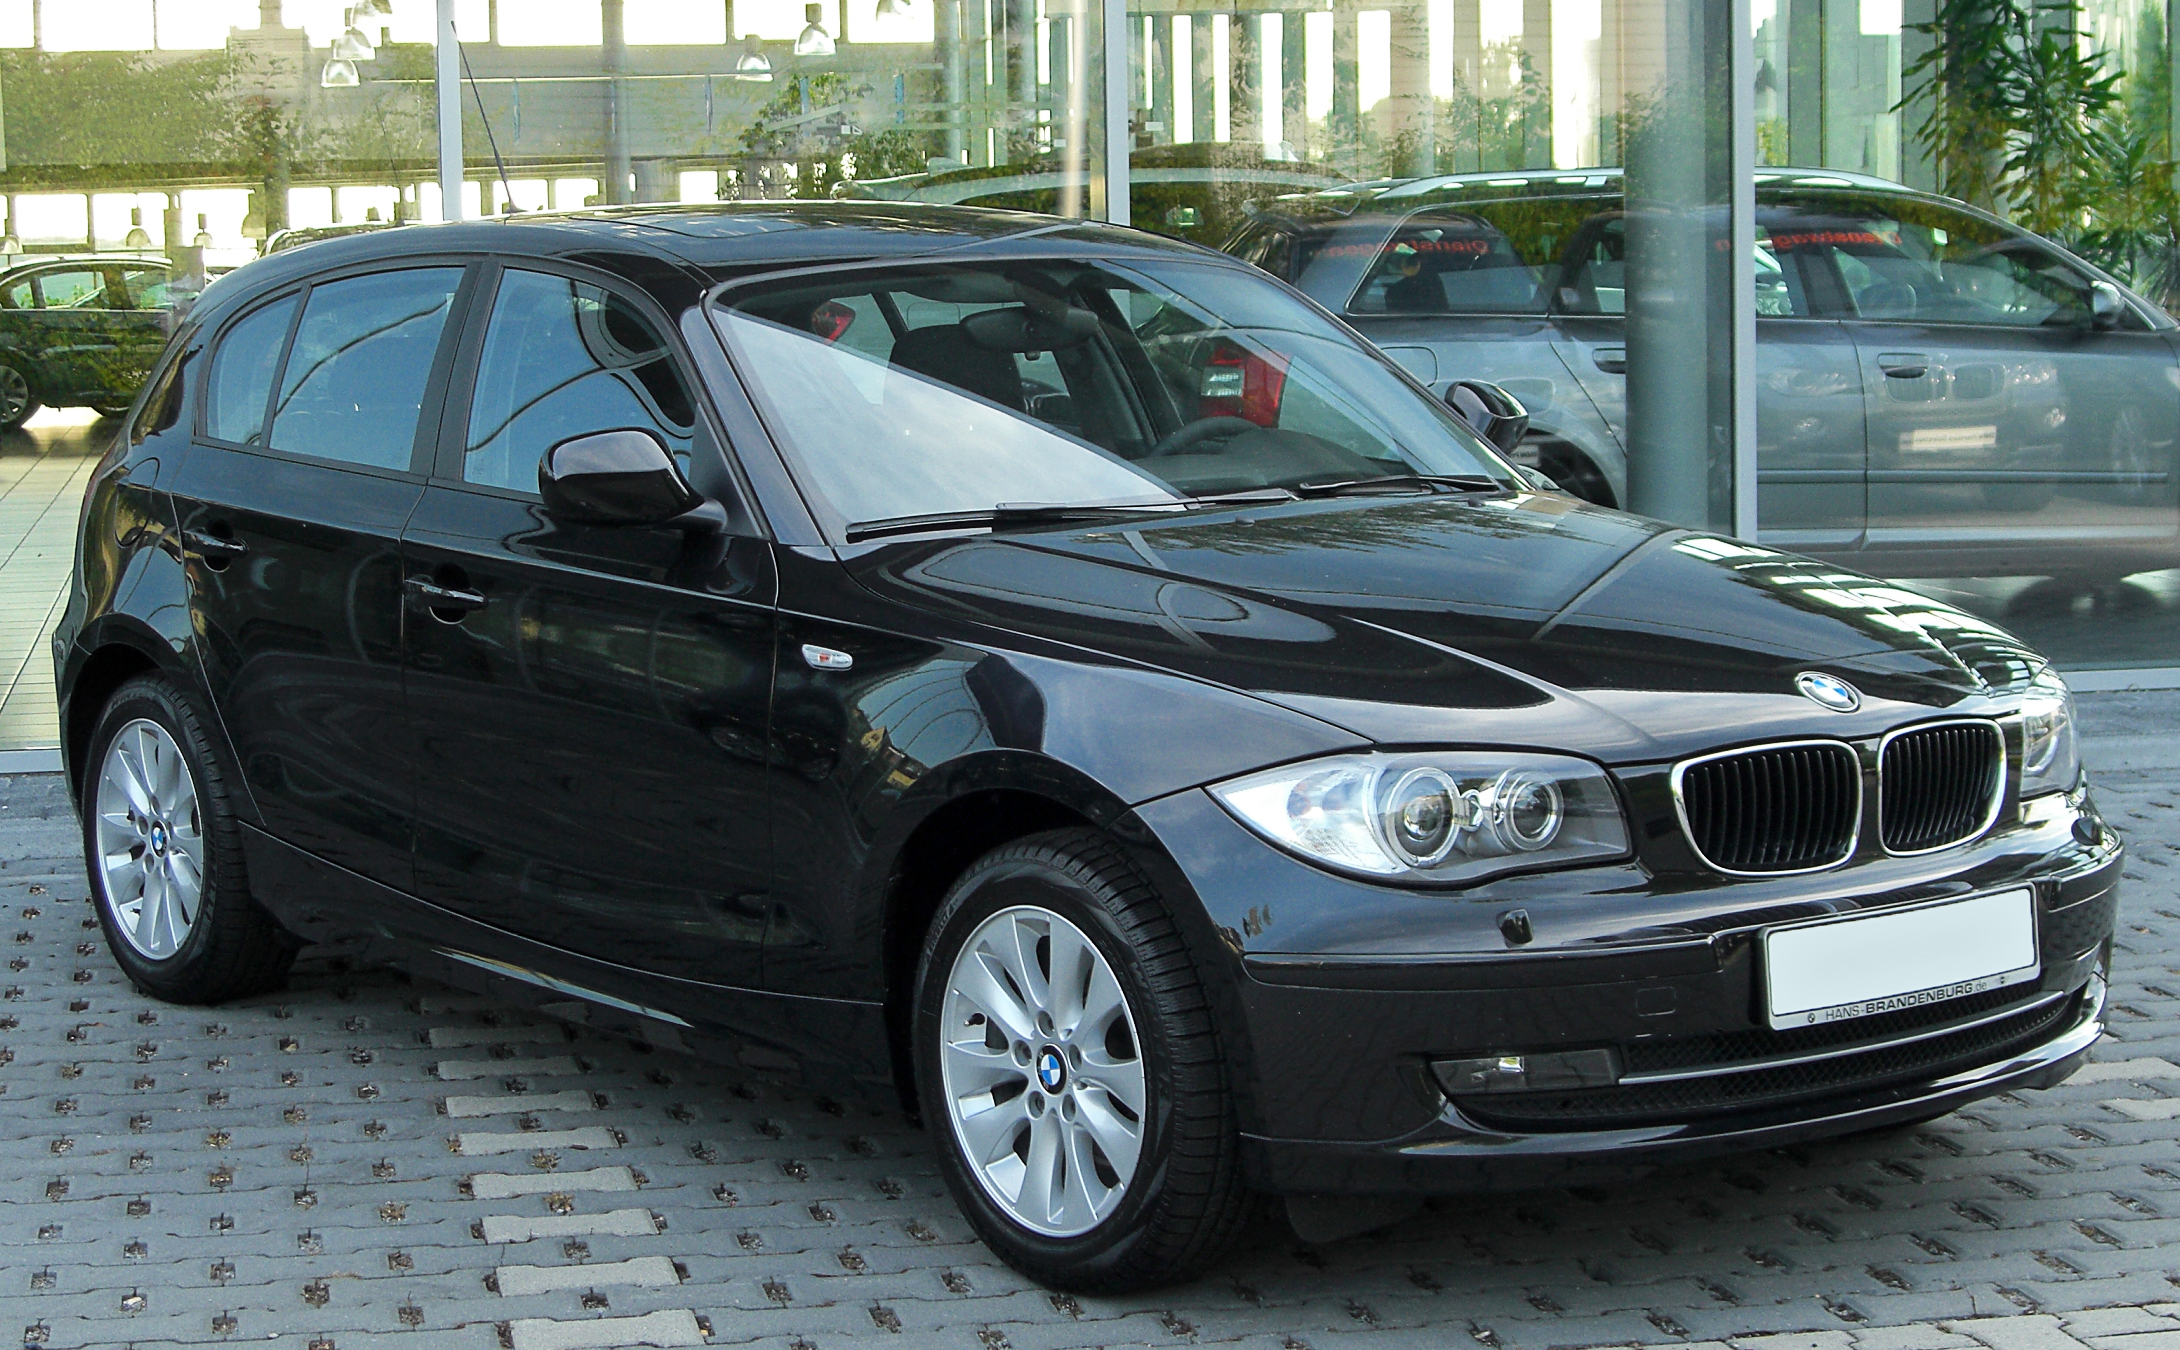 file bmw 118d e87 facelift front wikimedia commons. Black Bedroom Furniture Sets. Home Design Ideas